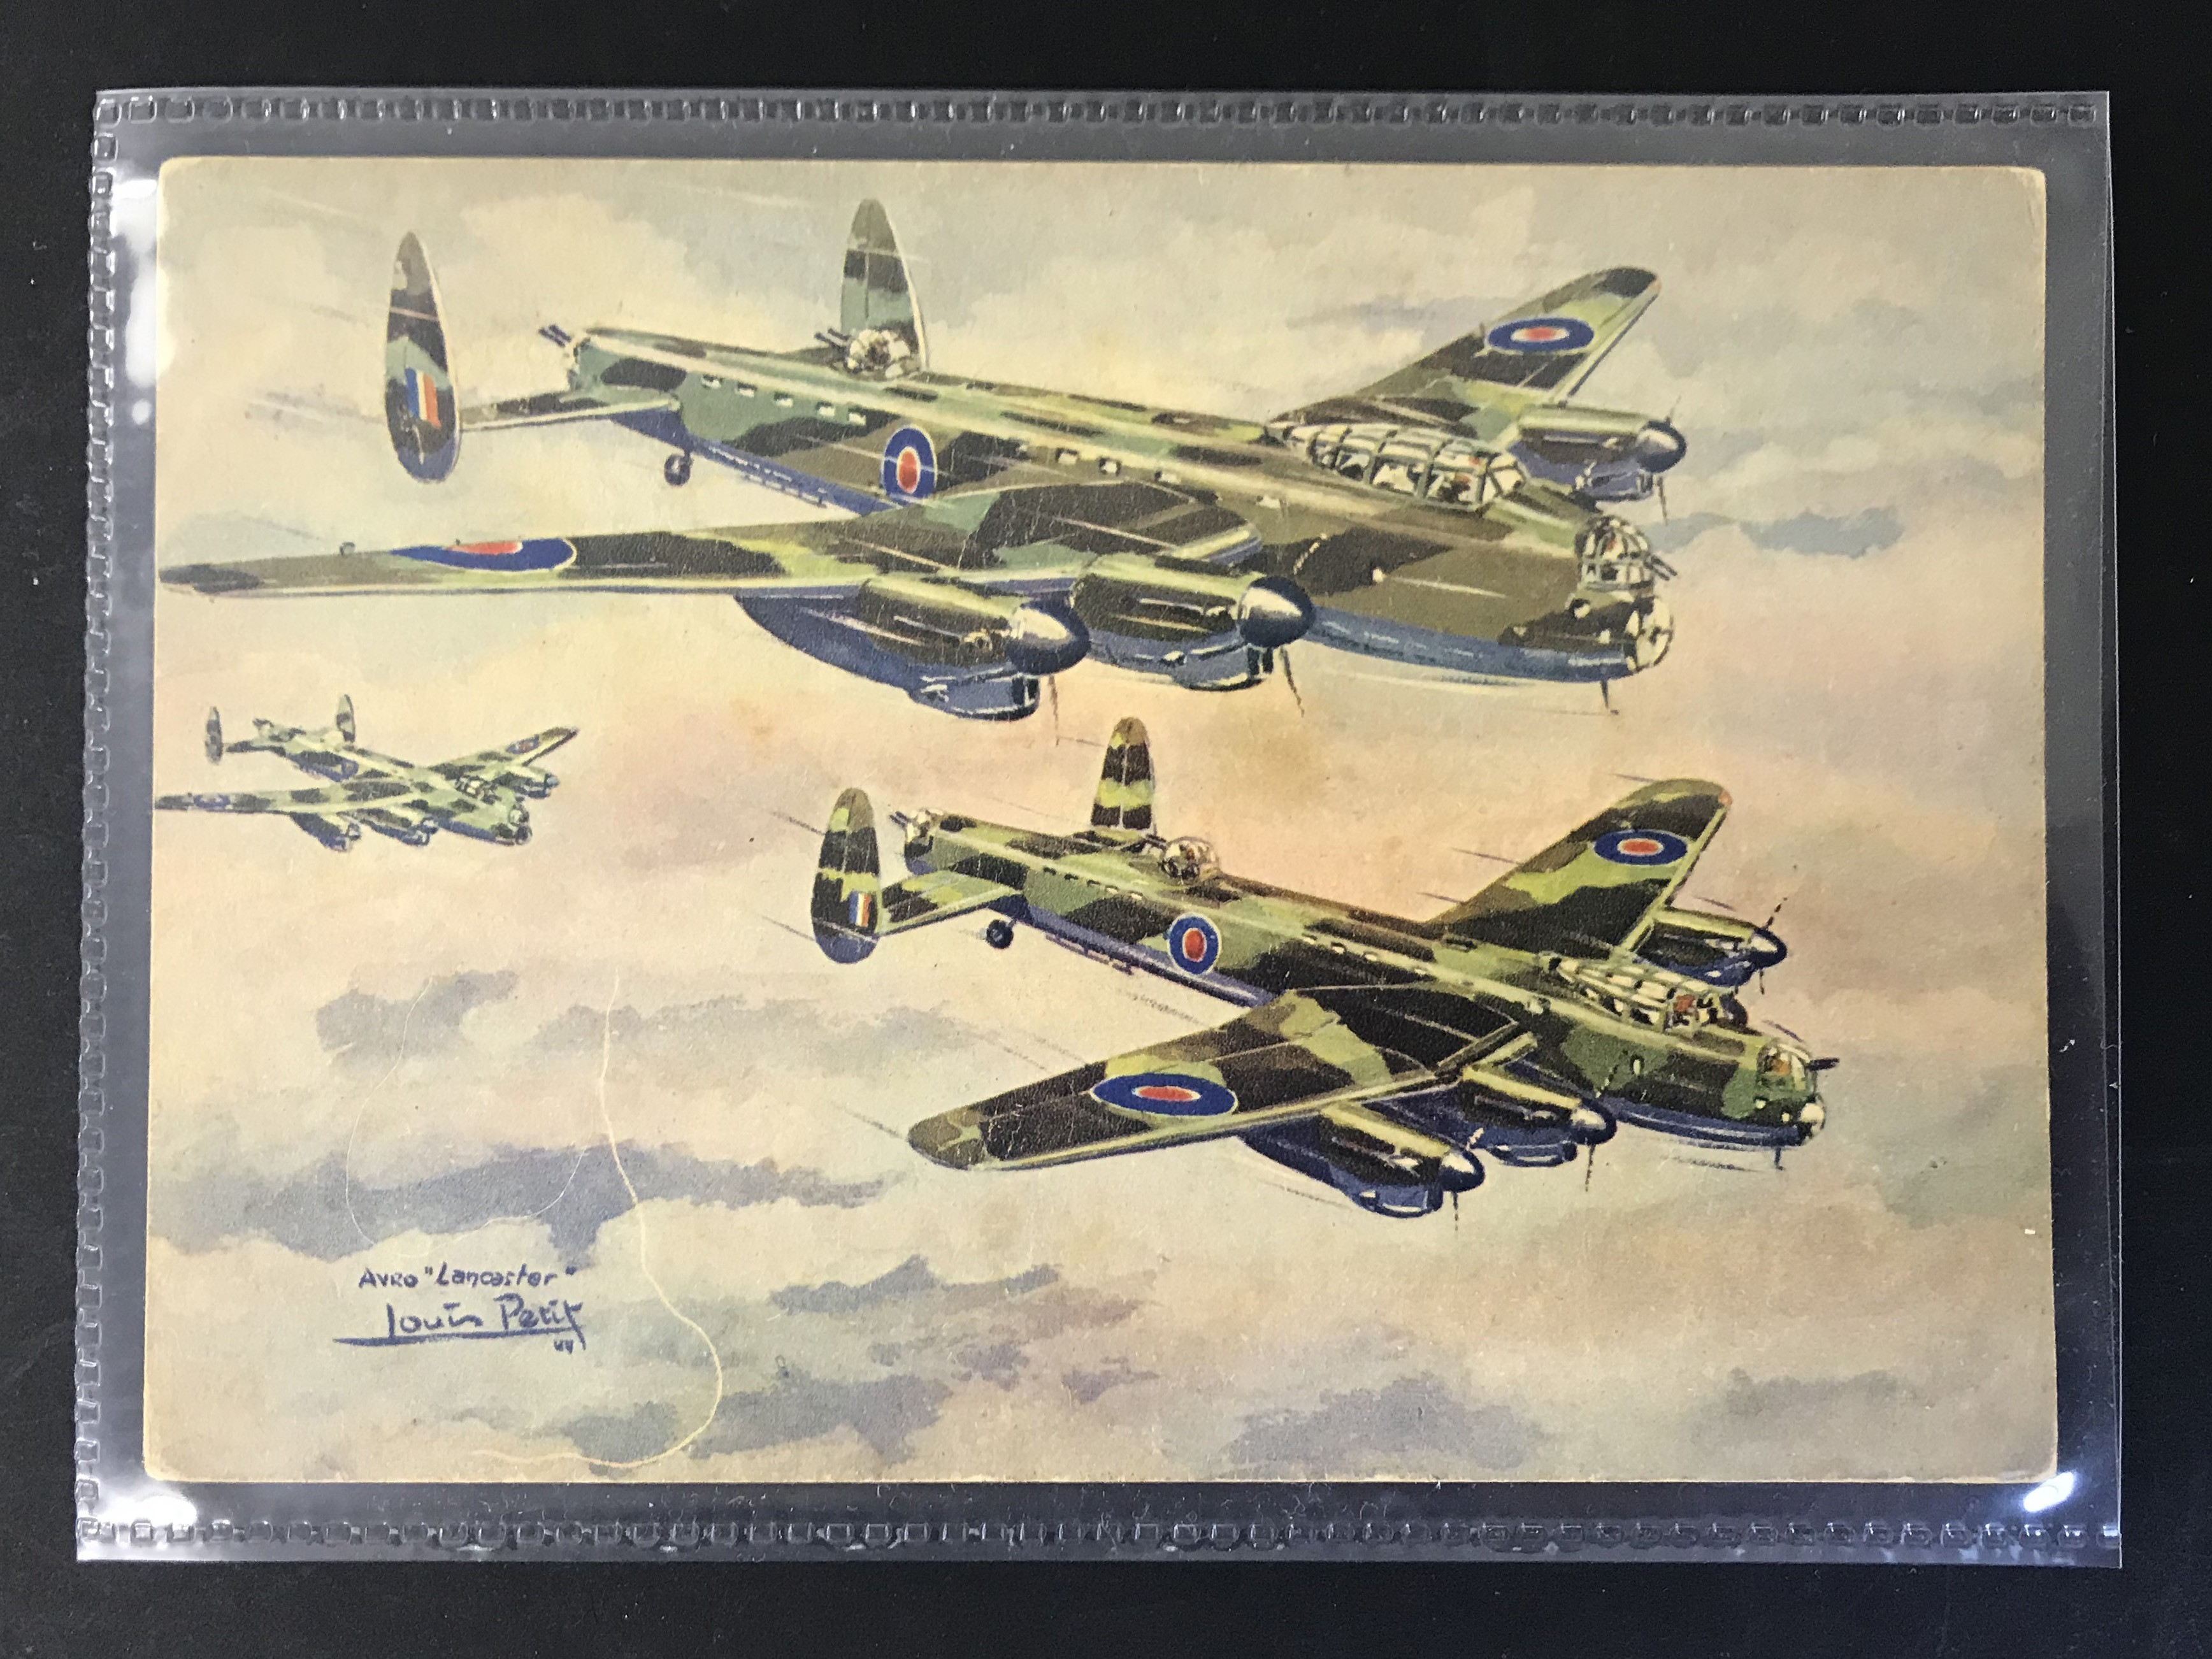 GROUP OF TWELVE FRENCH PLANES RELATED POSTCARDS - VARIOUS SERIES - Image 7 of 14